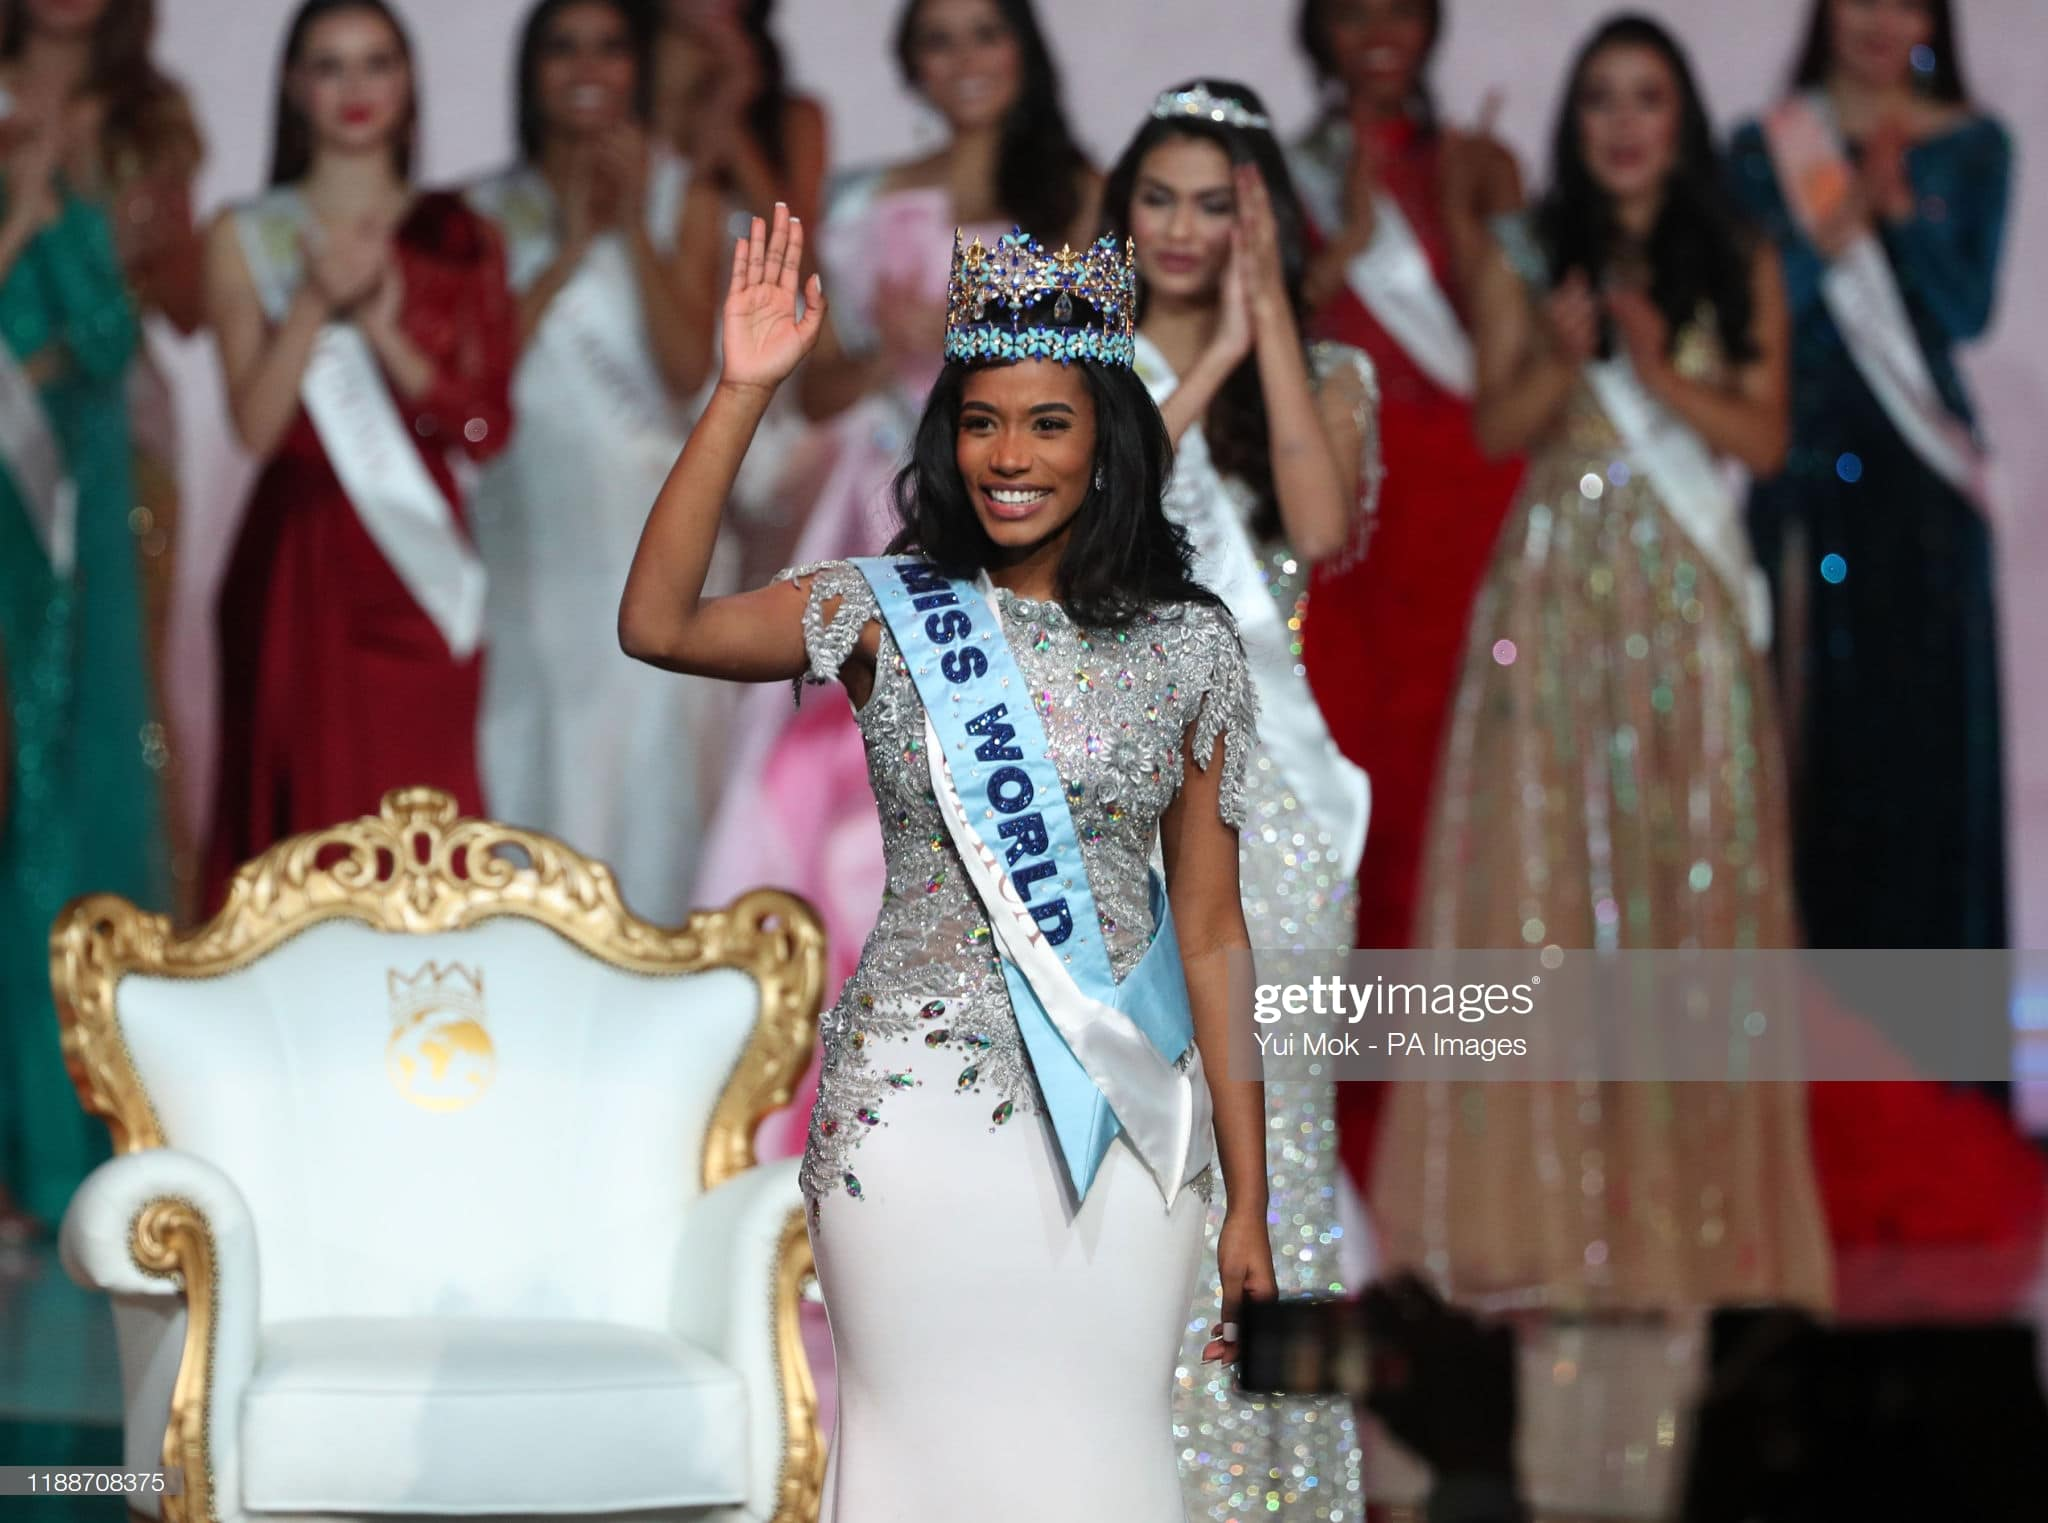 toni-ann-singh-wins-miss-world-apc-lifts-ban-of-politicians-latest-news-global-world-stories-monday-december-2019-style-rave